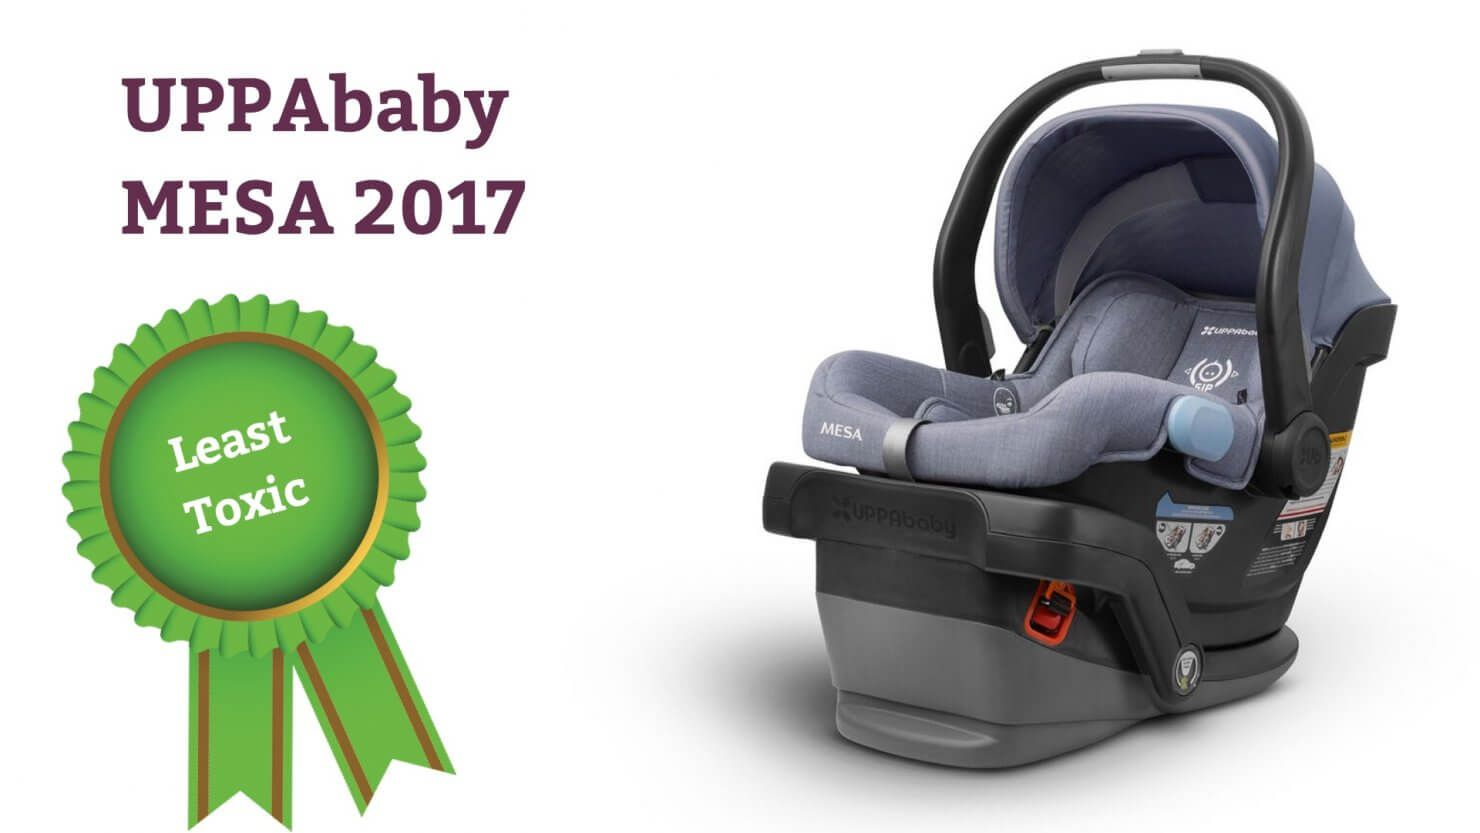 Uppababy Mesa 2017 Least Toxic With No Chemical FRs